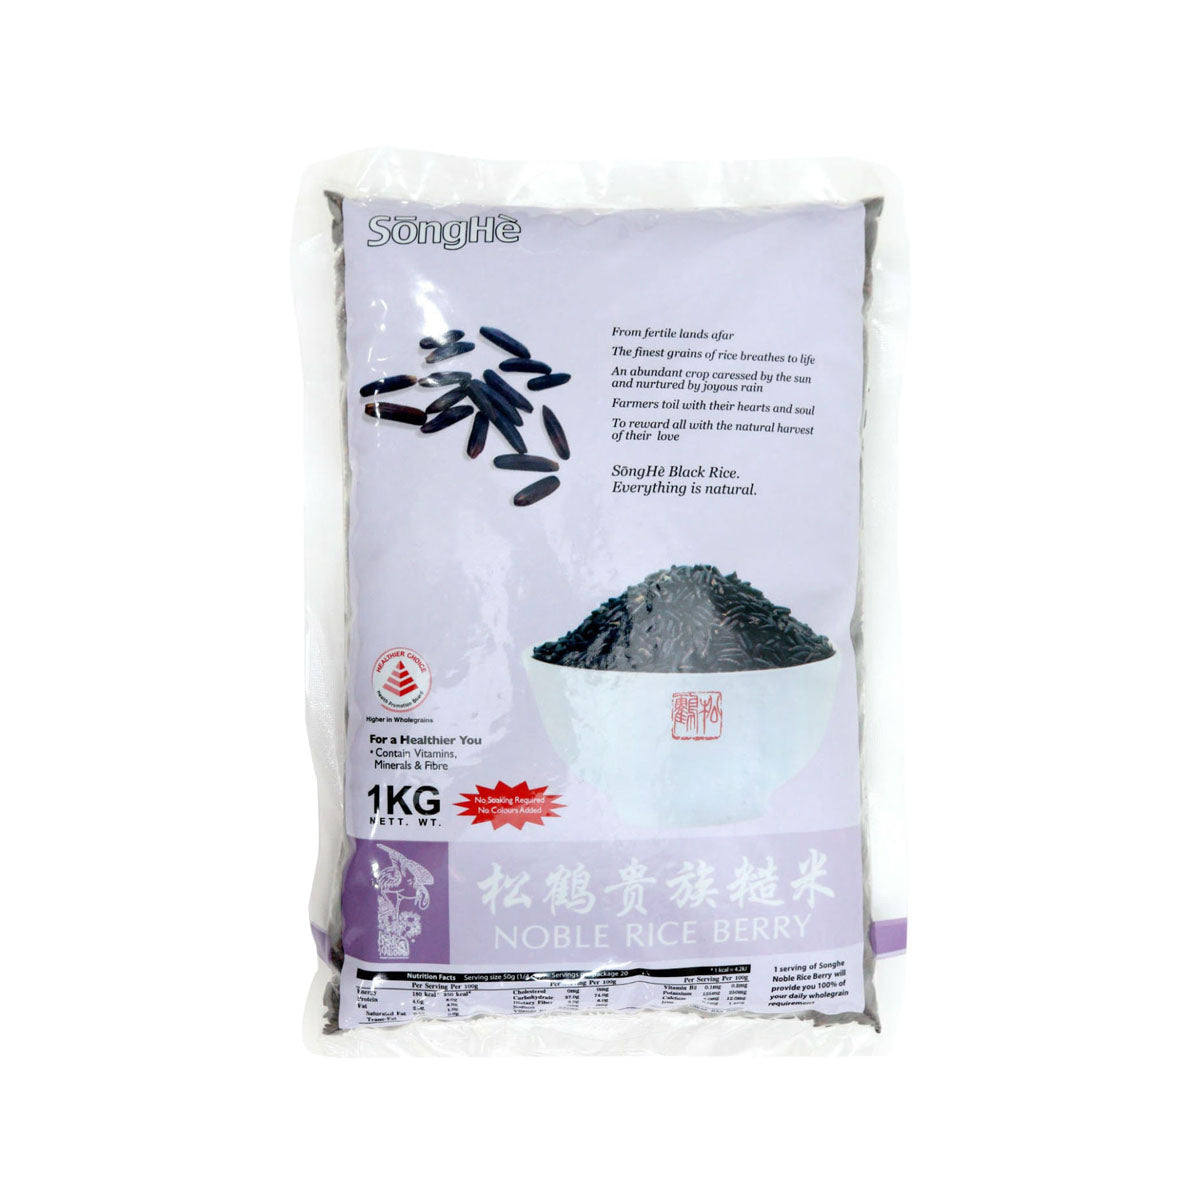 SongHe Noble Rice Berry (1kg)